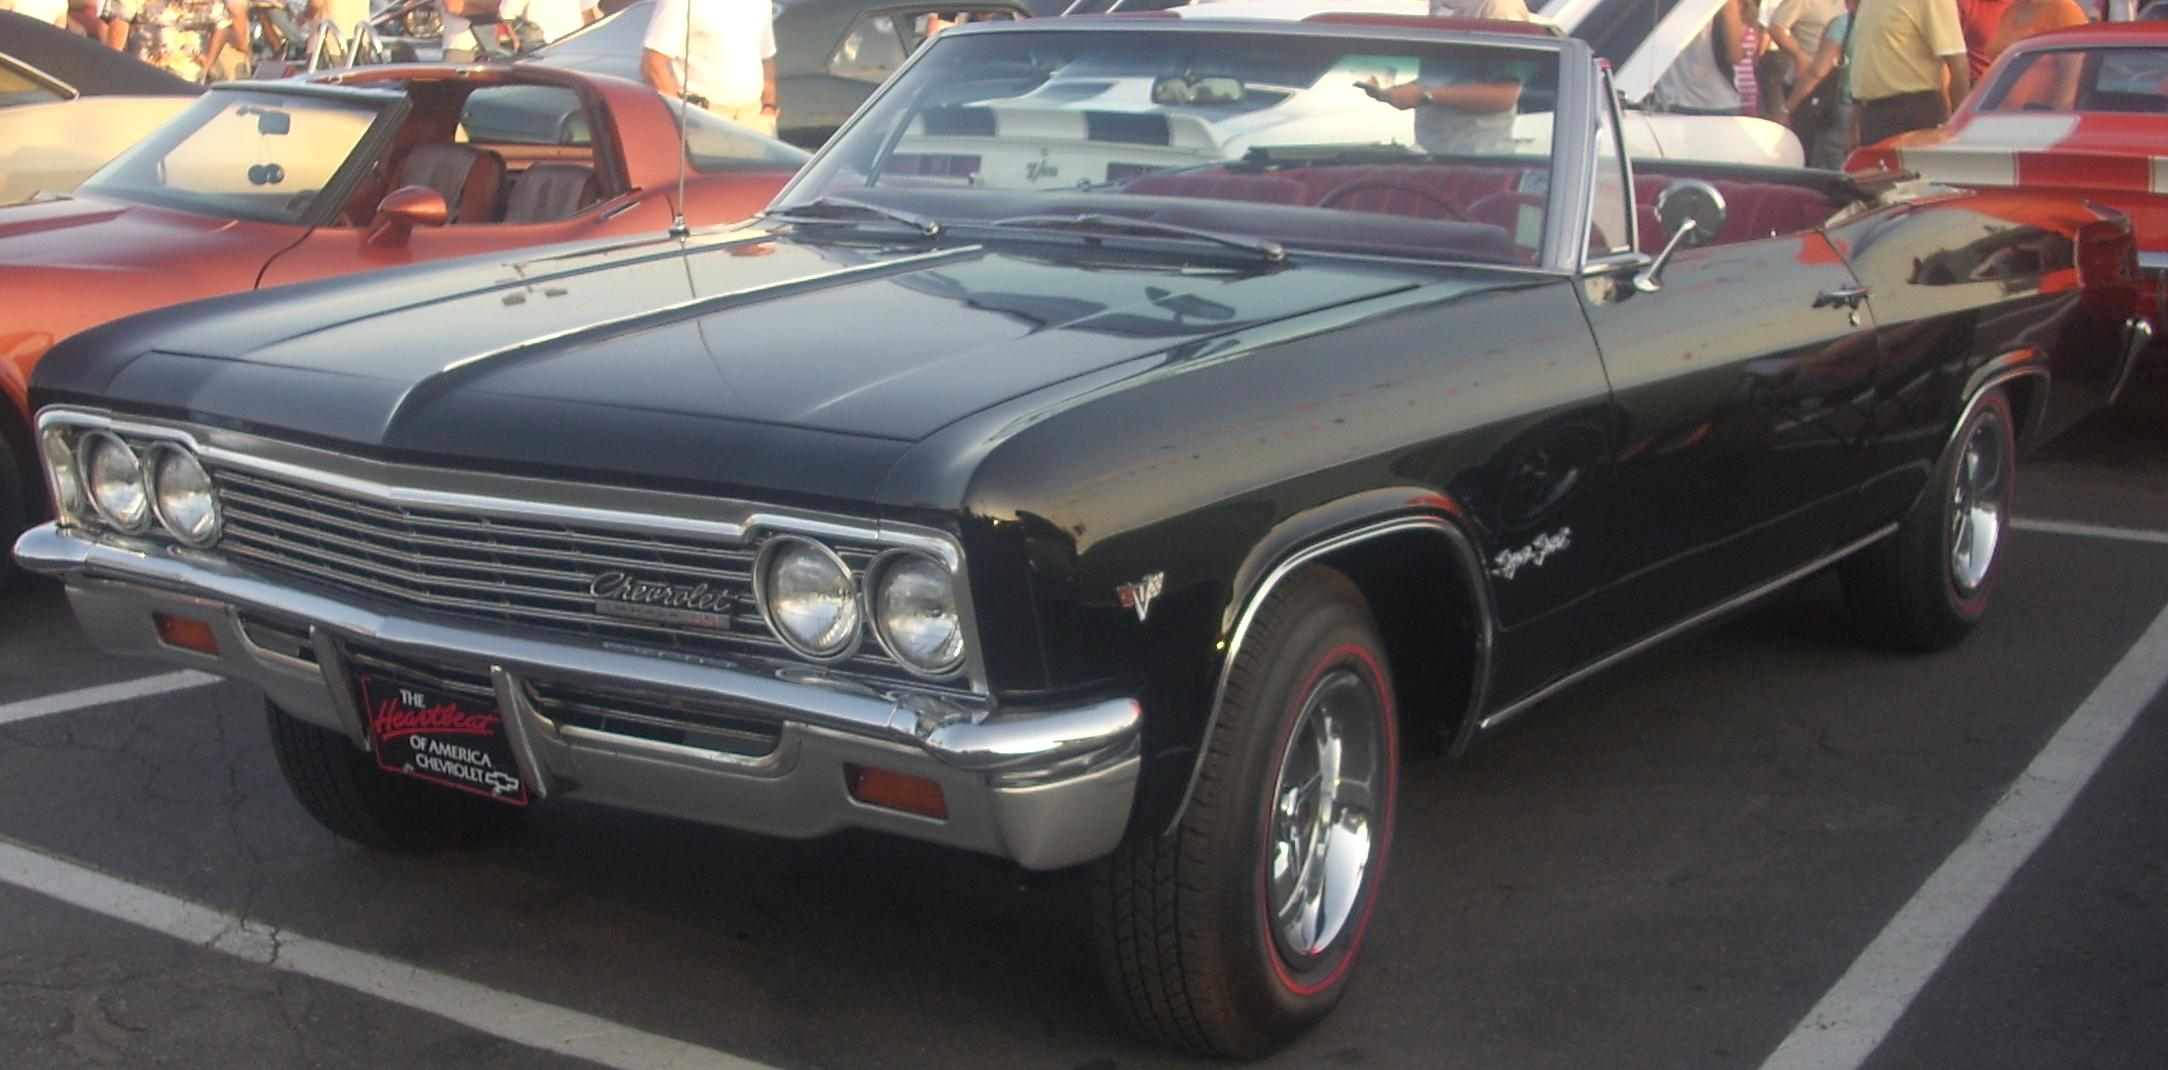 Chevrolet Impala 1966 Chevy Suspension Ss Convertible